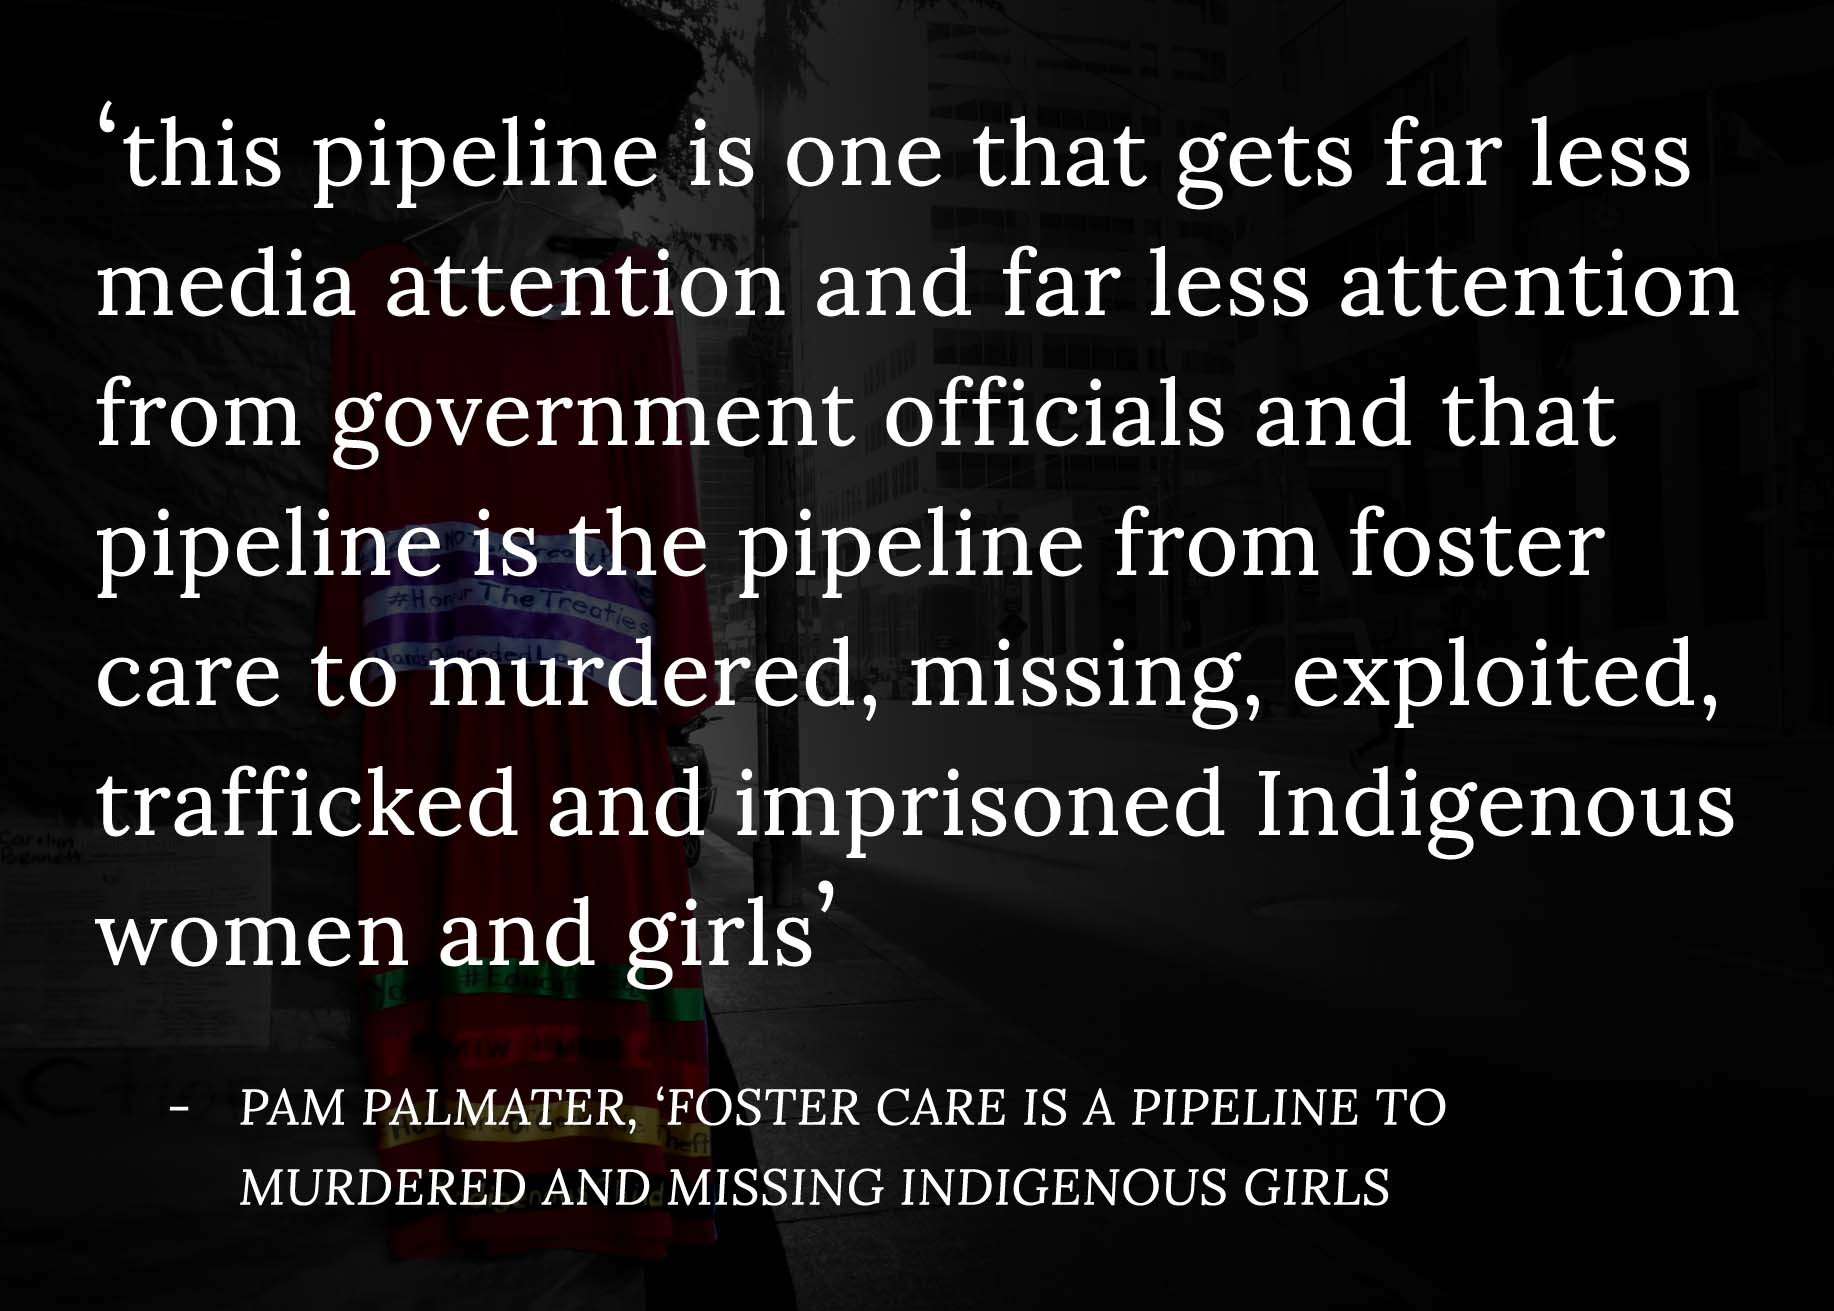 "An image featuring text which reads ""this pipeline is one that gets far less media attention and far less attention from government officials and that pipeline is the pipeline from foster care to murdered, missing, exploited, trafficked and imprisoned Indigenous women and girls"" - Pam Palmater, 'Foster care is a pipeline to murdered and missing Indigenous girls'"